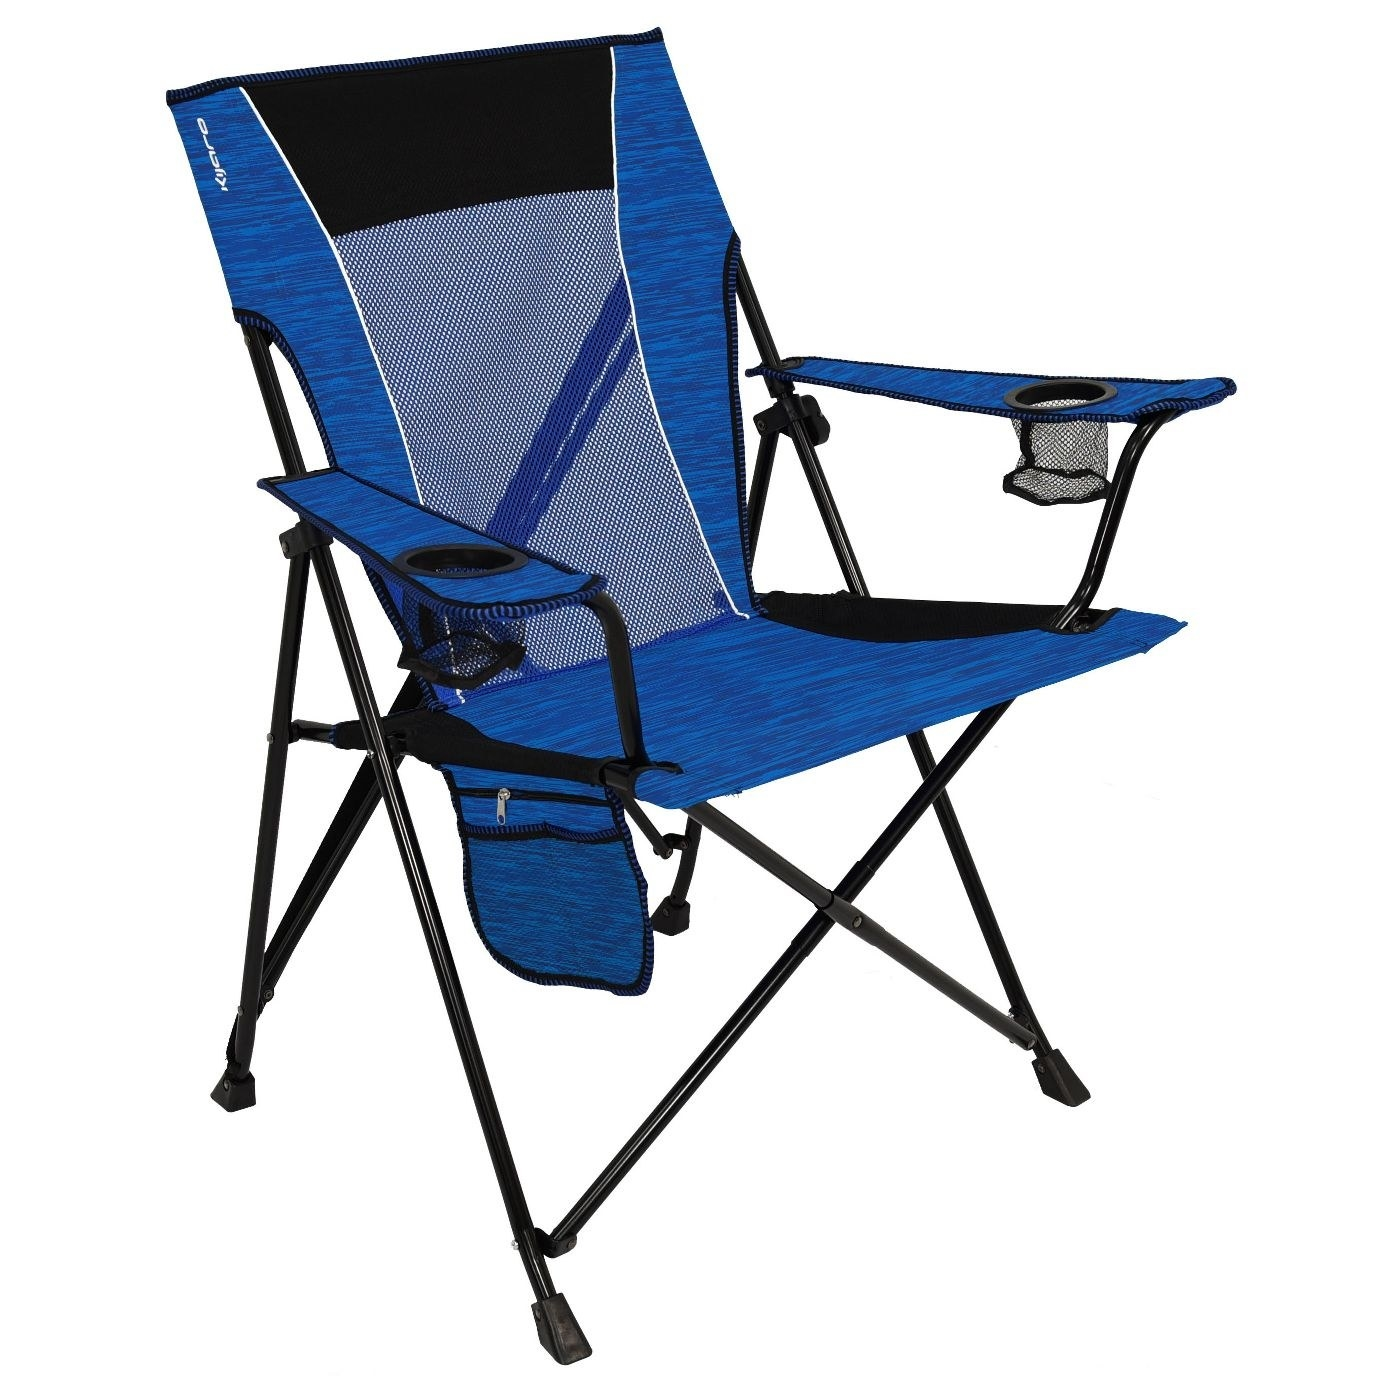 the blue camp chair